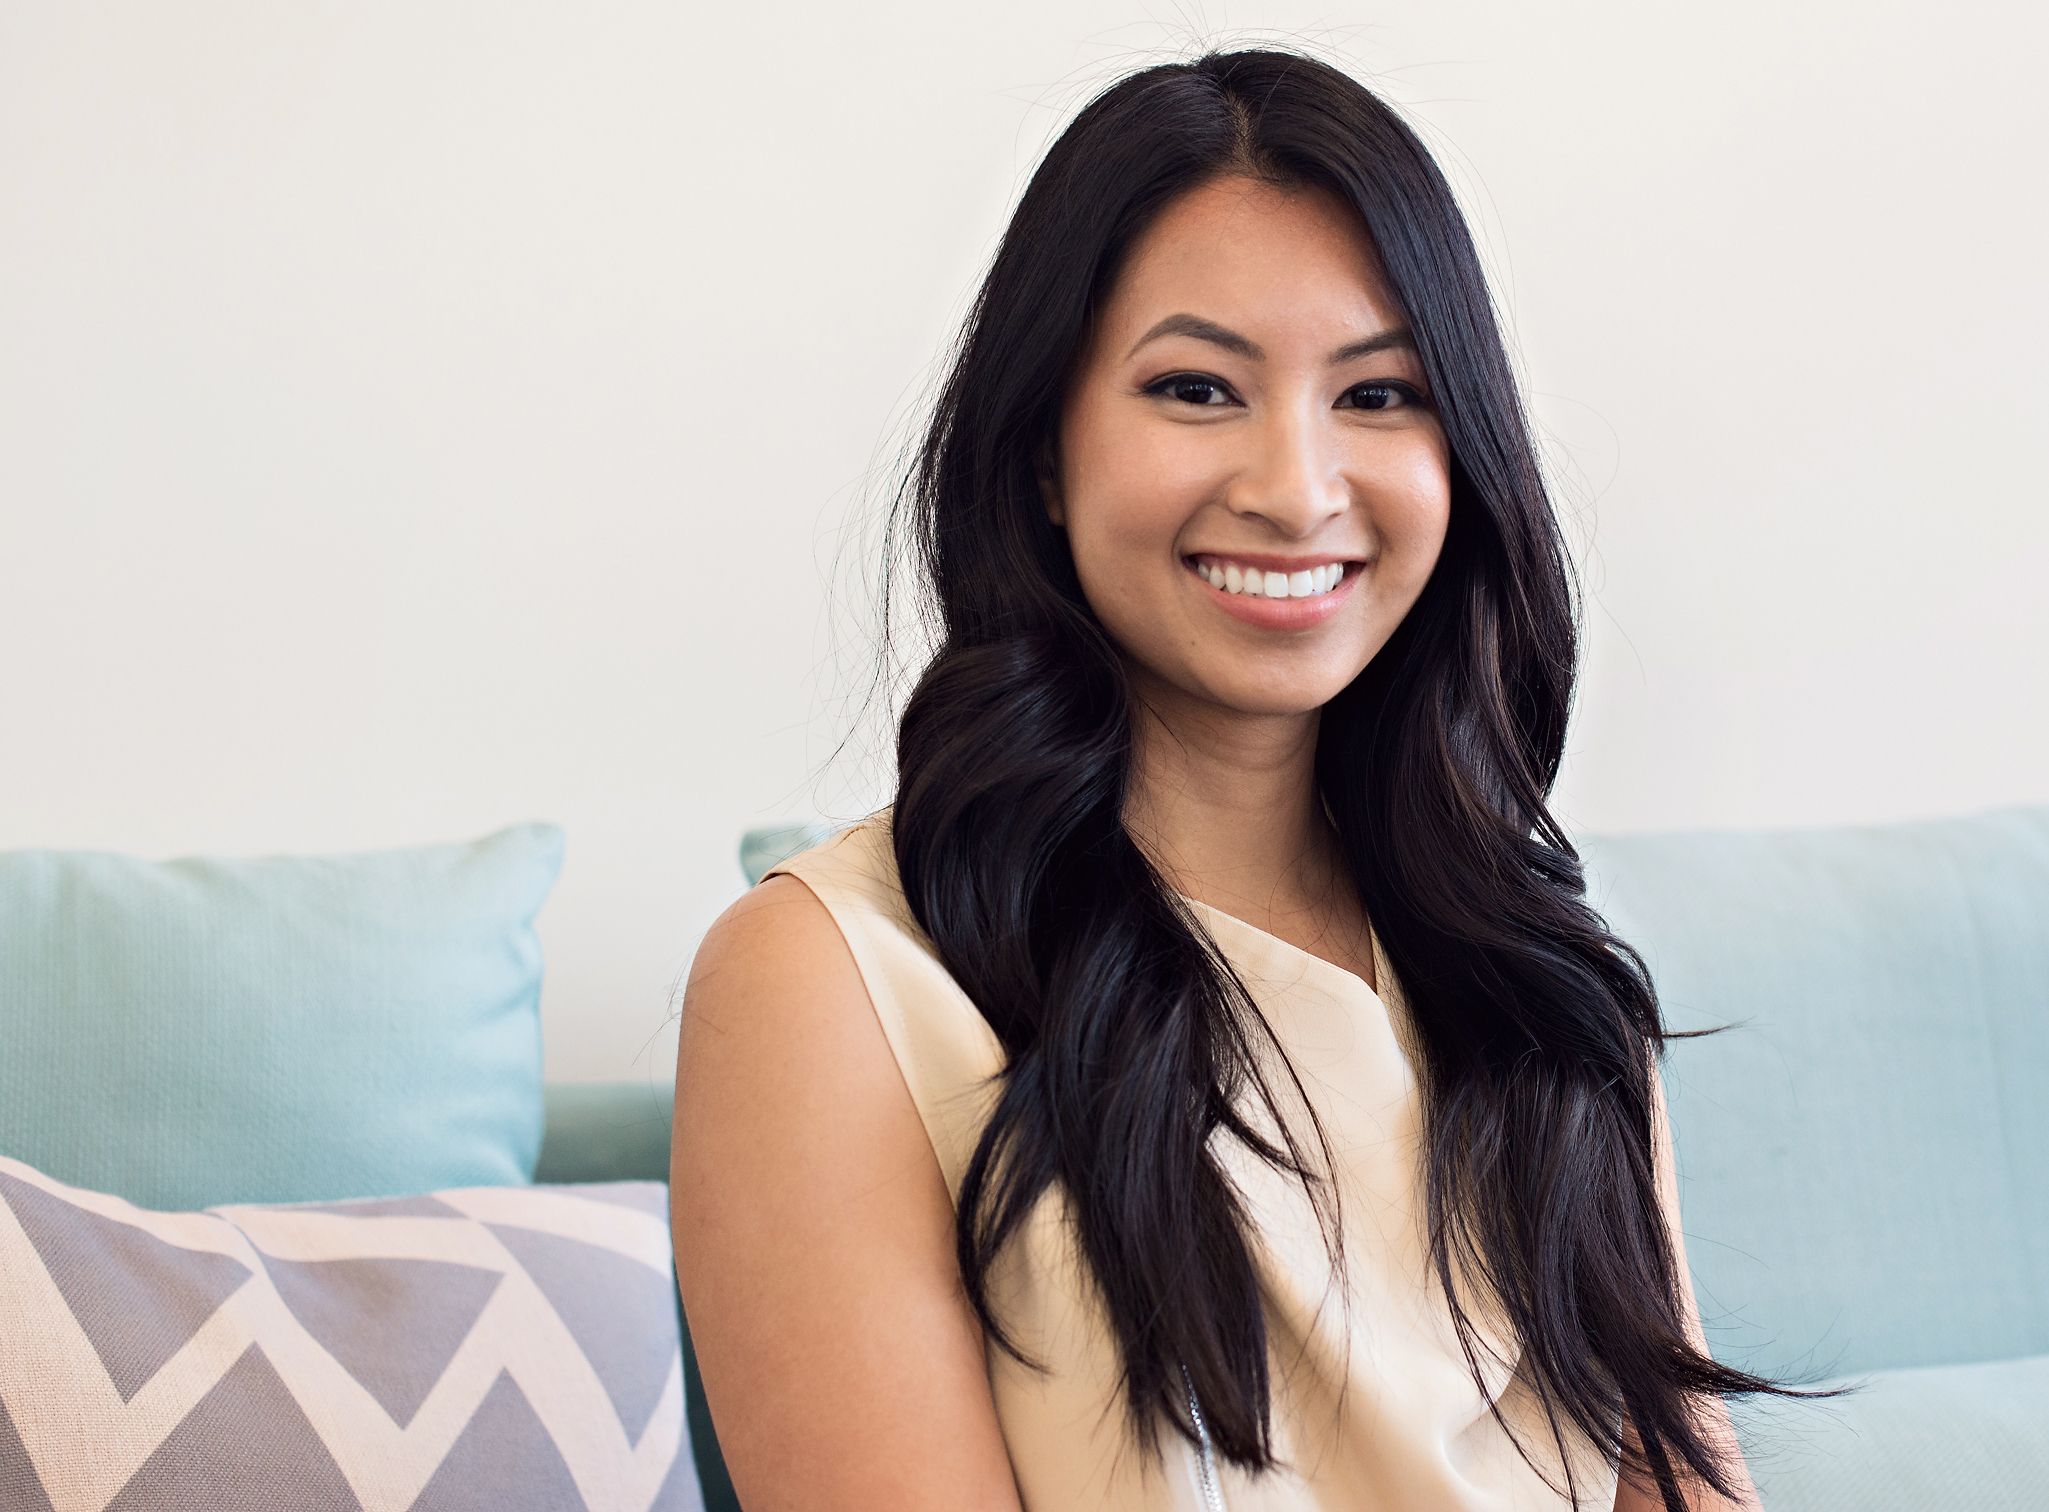 Bold & Pop #BoldBossTribe Feature with Founder Phuong Mai of P.MAI